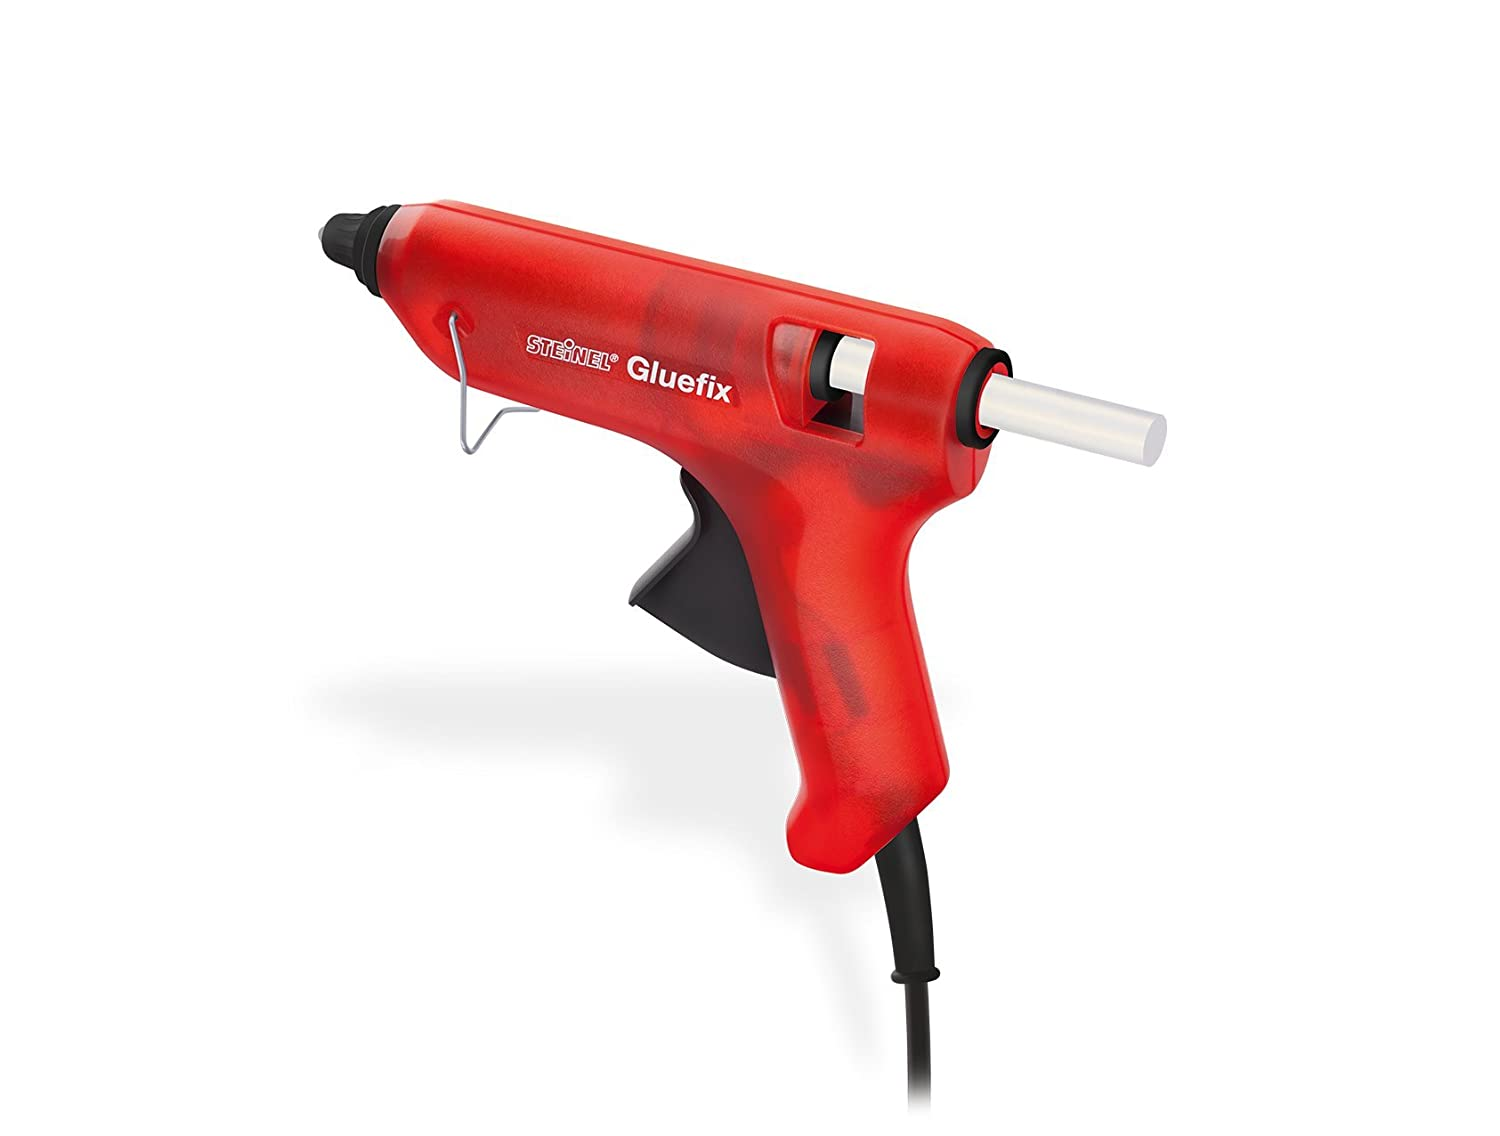 Steinel Gluefix Glue Gun, electronic temperature control, incl. 2 Cristal glue sticks 11 mm, warm-up time 7-8 min 333911